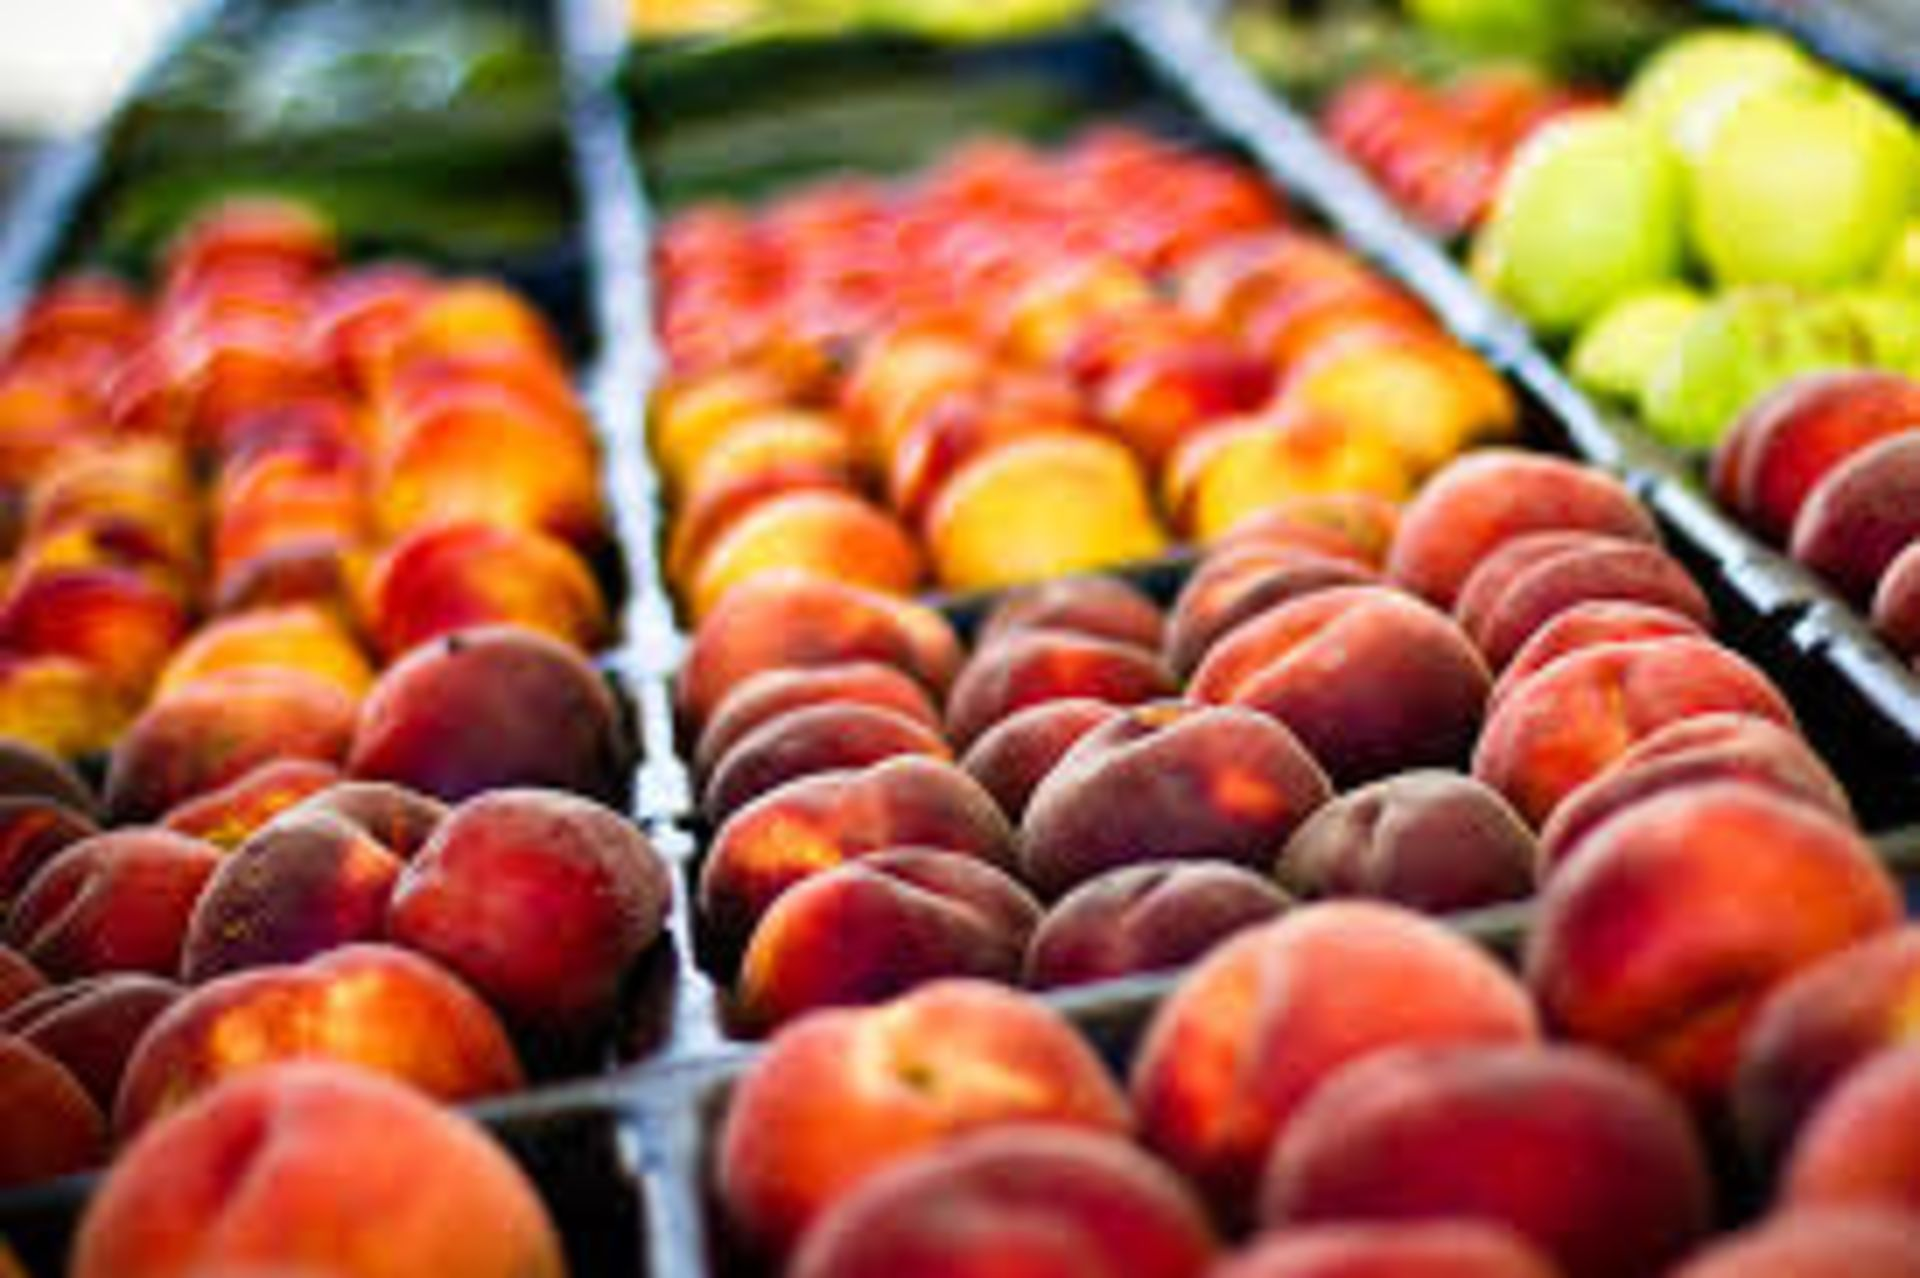 Downtown Green Bay – Farmers Market this Weekend!